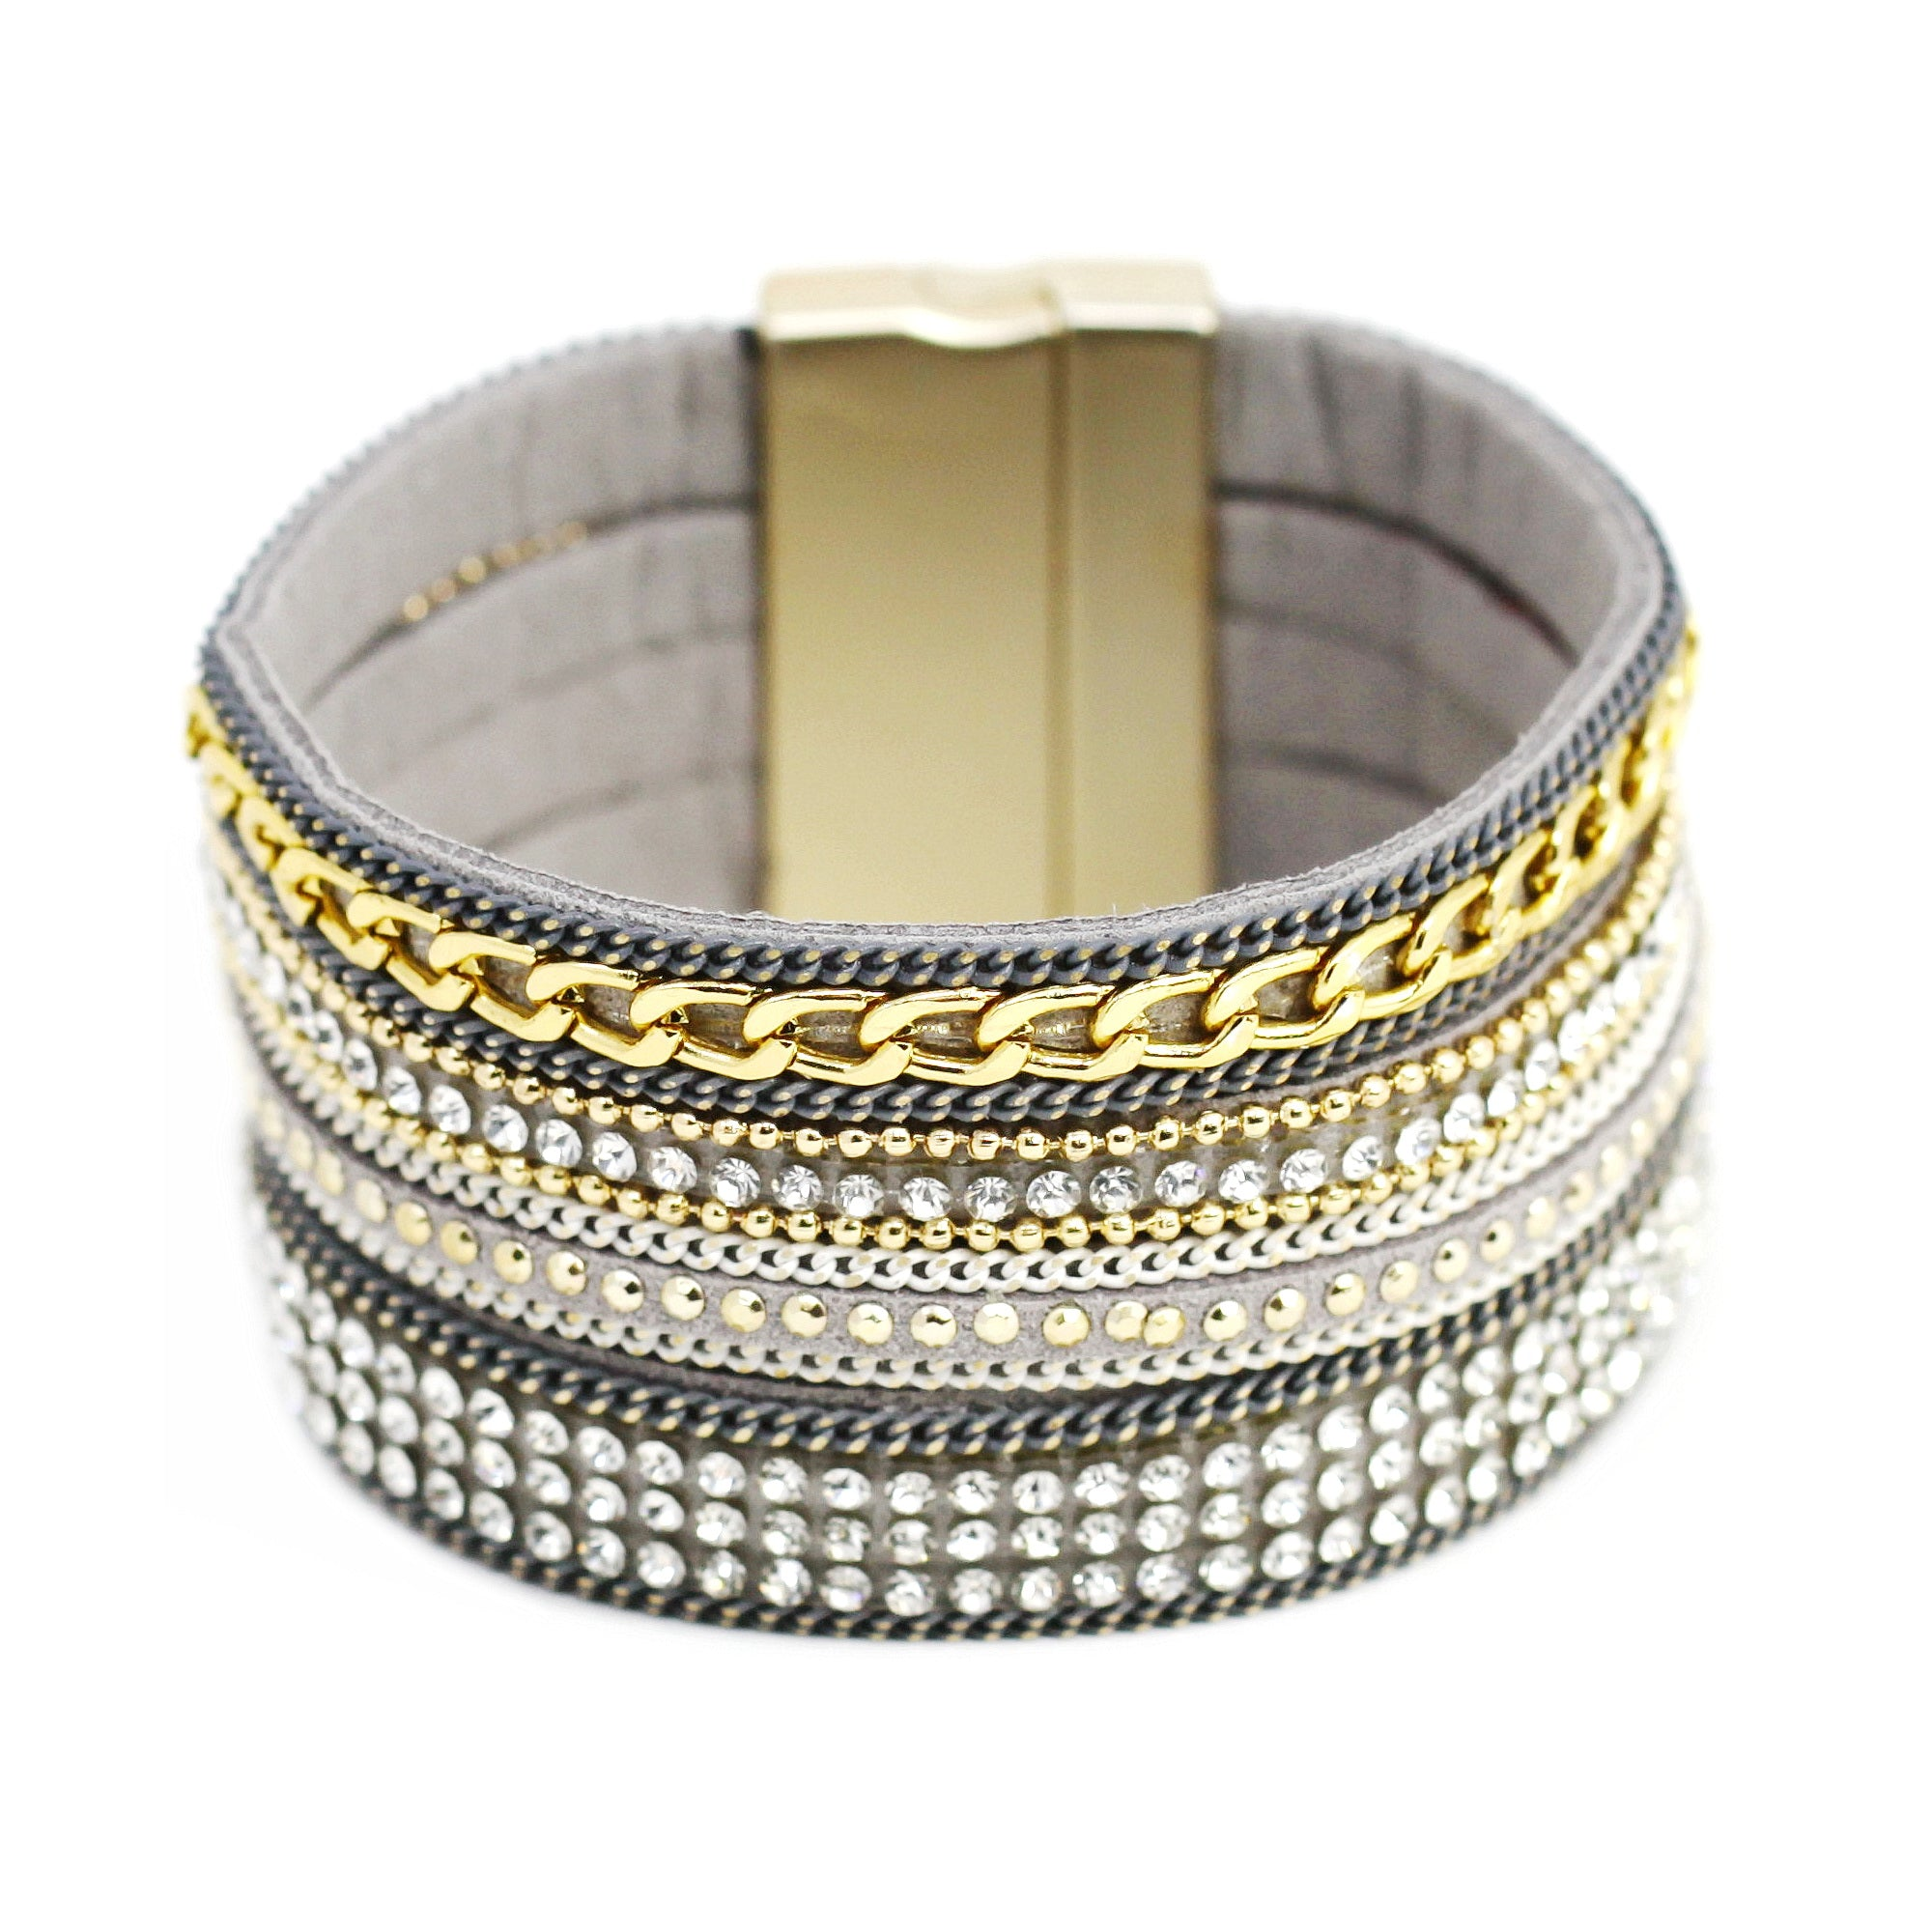 Stone Embellished Linked Chain Magnetic Bracelet